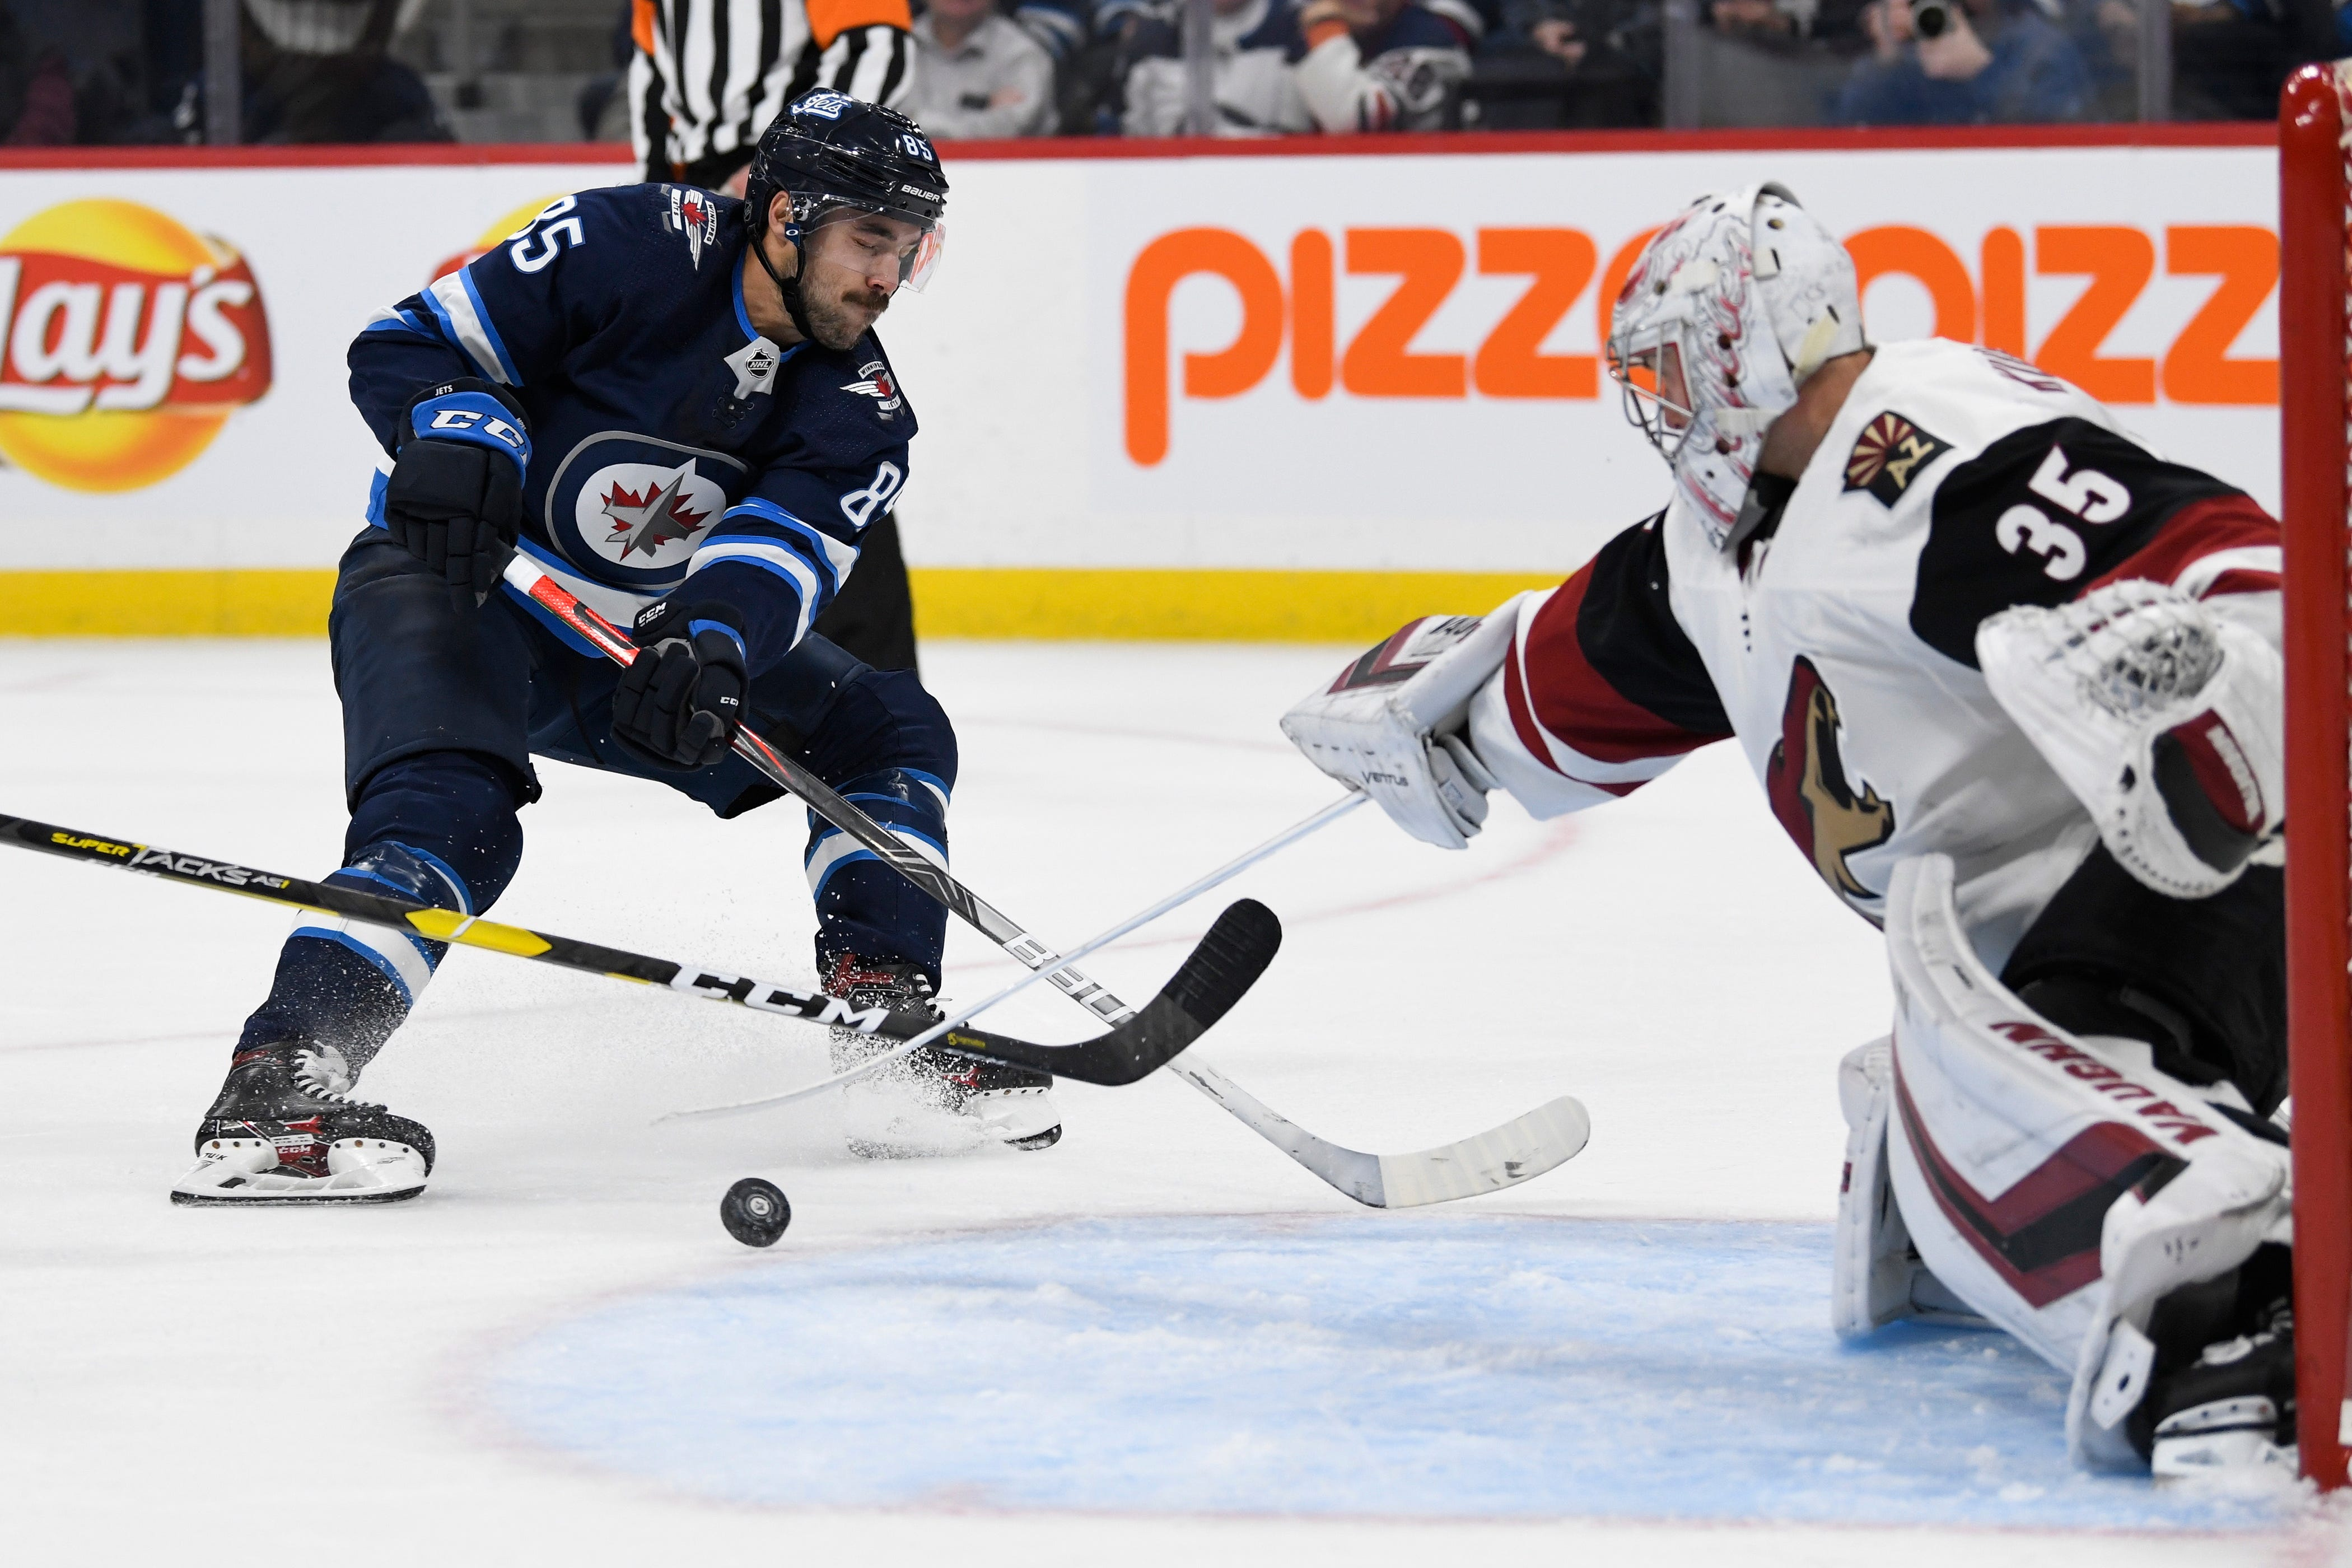 Video recap: What we learned in Coyotes' 4-2 win over Jets